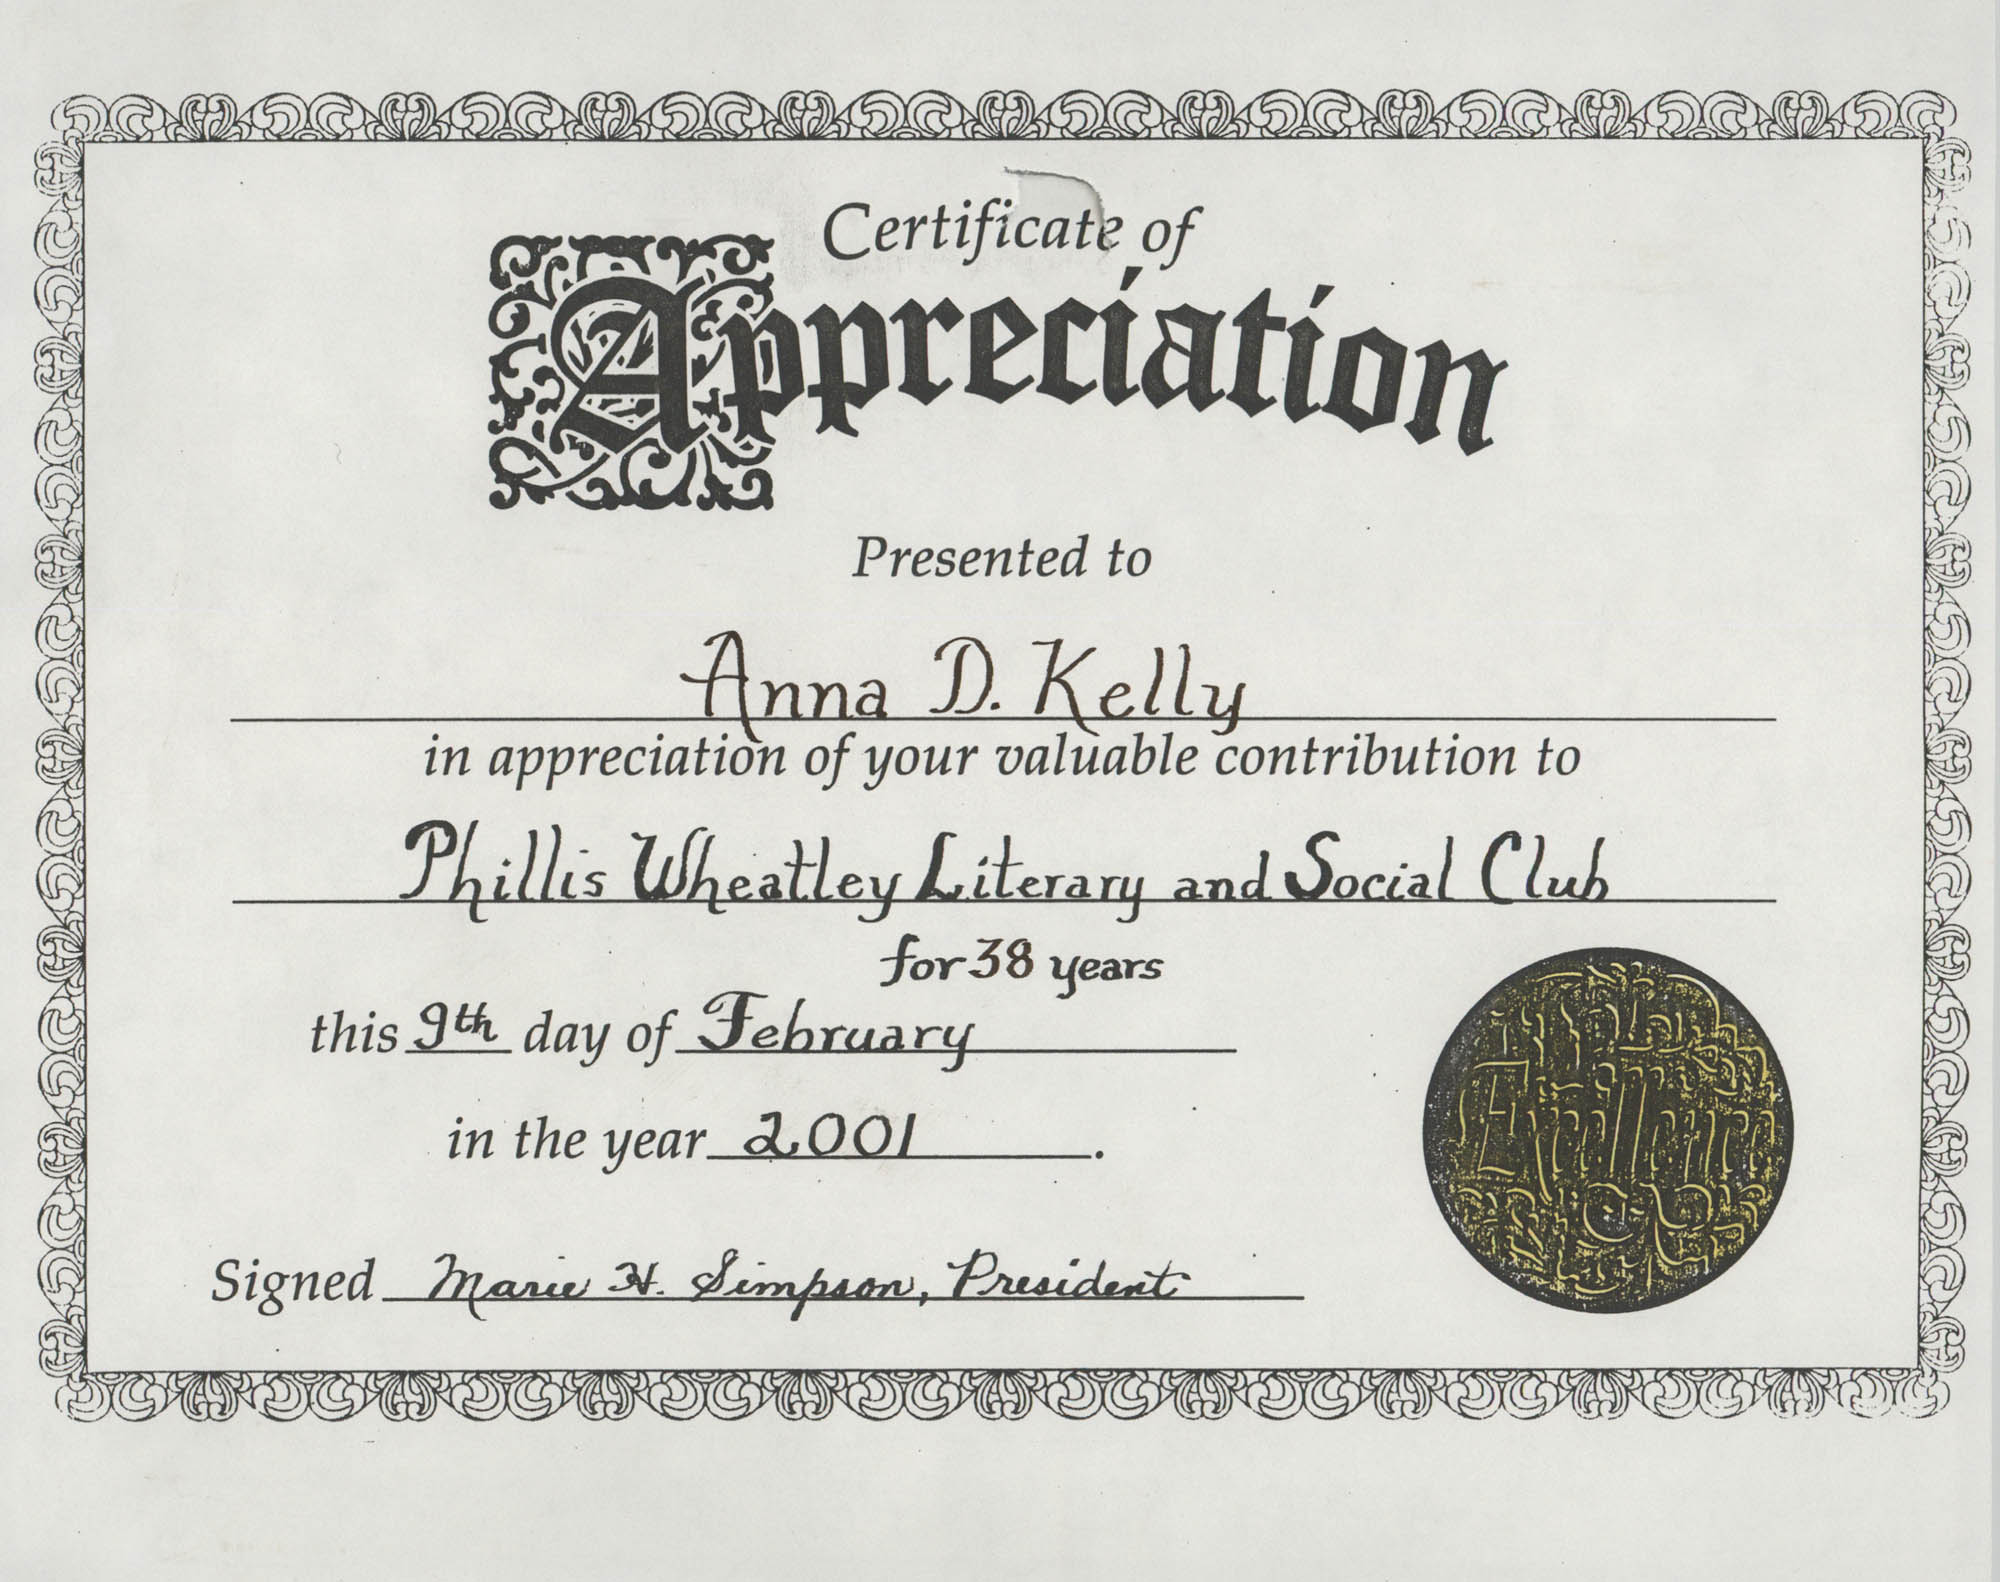 Certificate of Appreciation, Anna D. Kelly